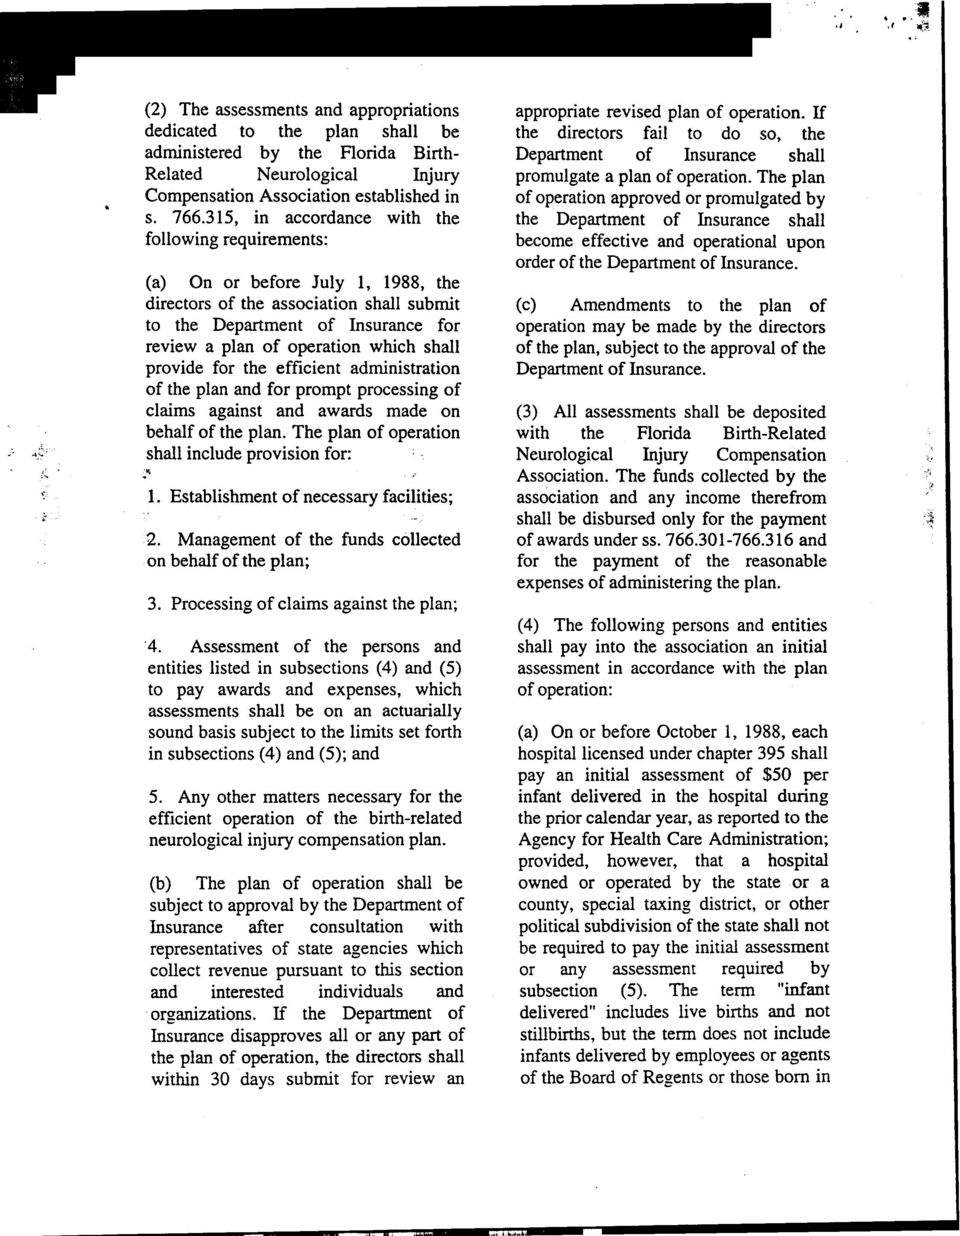 The plan.compensation Association established in of operation approved or promulgated by s. 766.